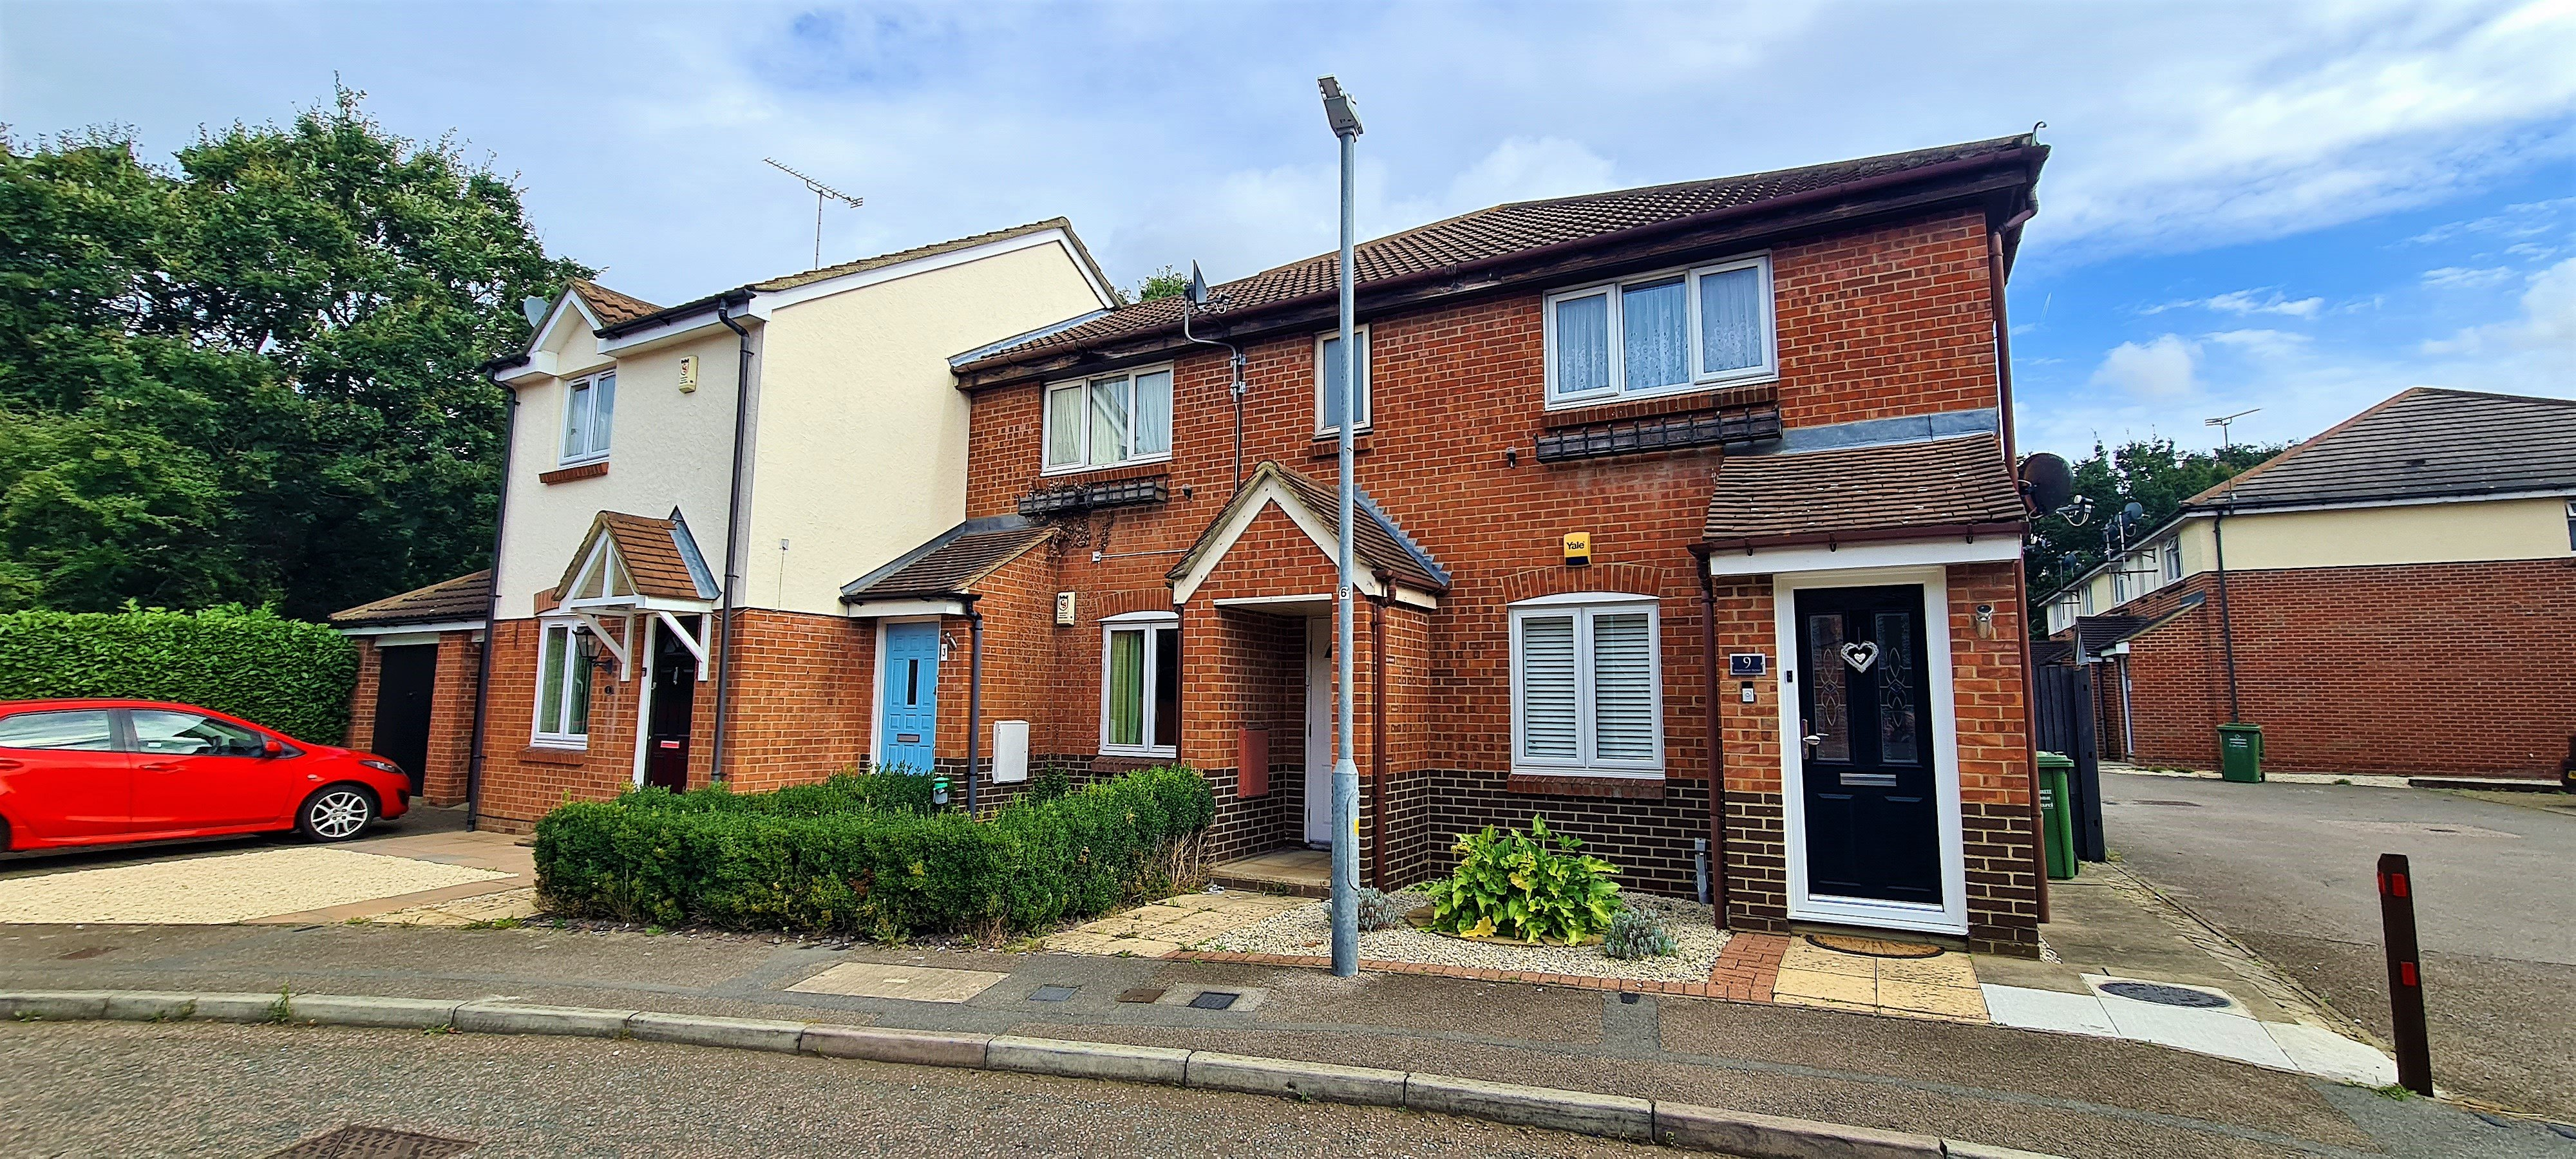 1 bed flat for sale in Maitland Road, Wickford, SS12